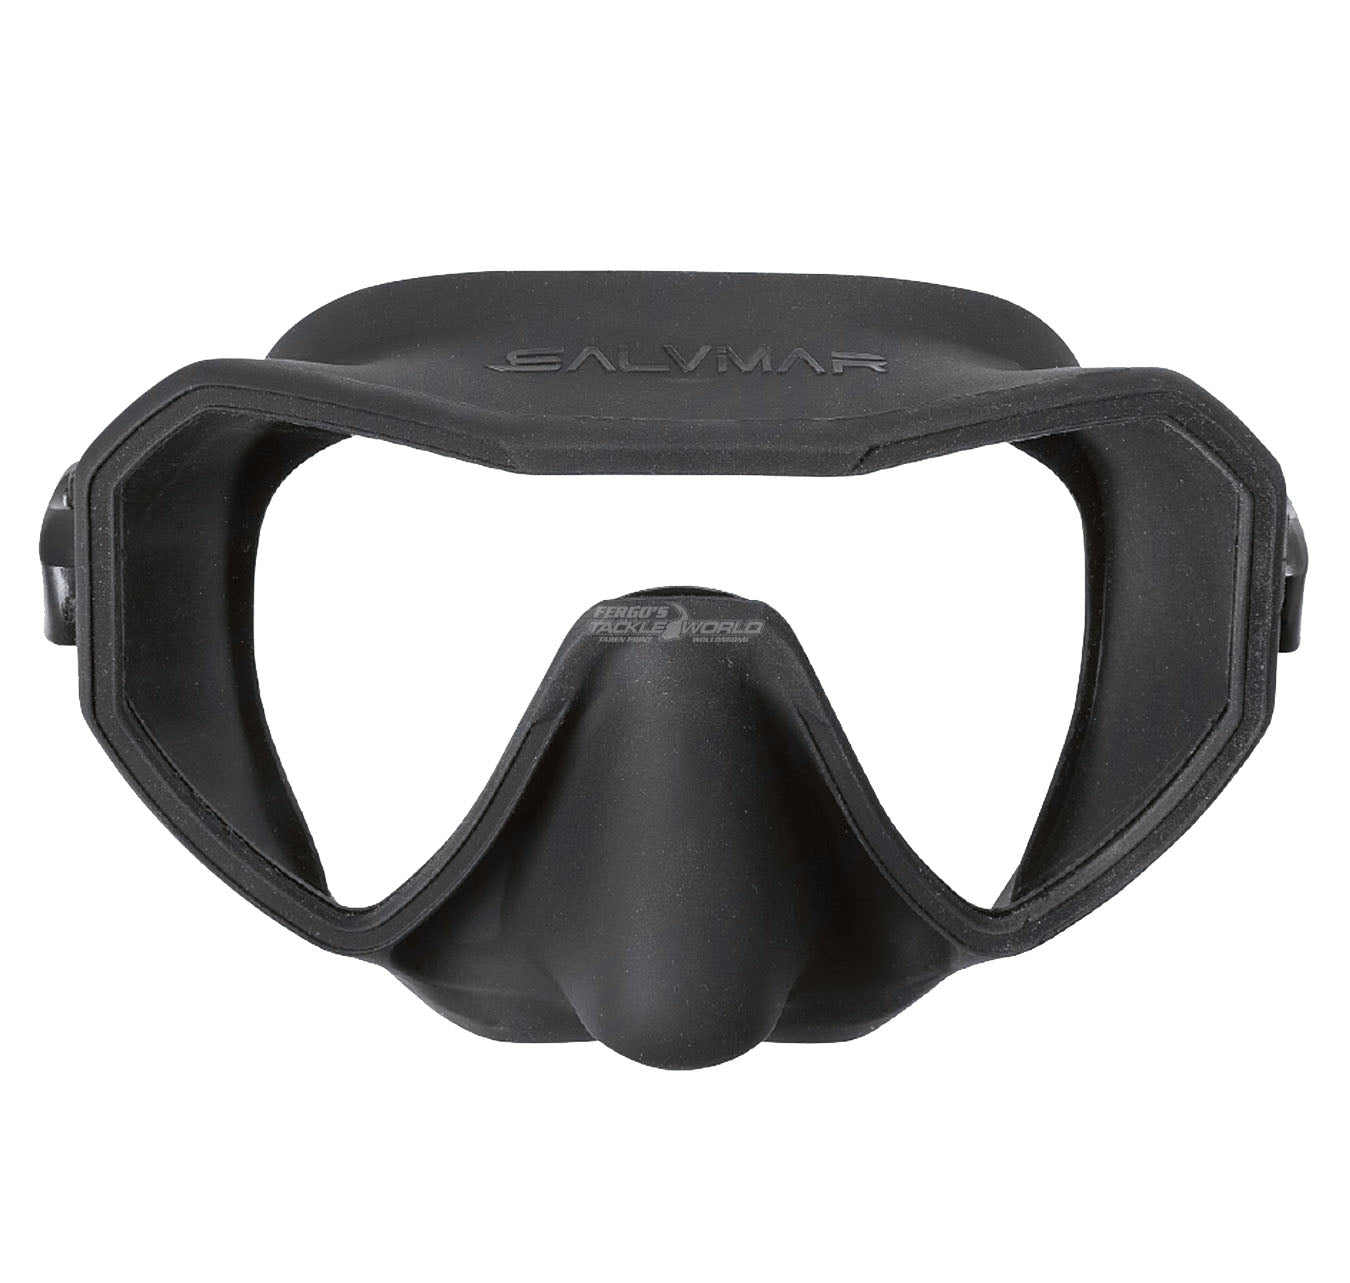 Salvimar Neo Mask Black